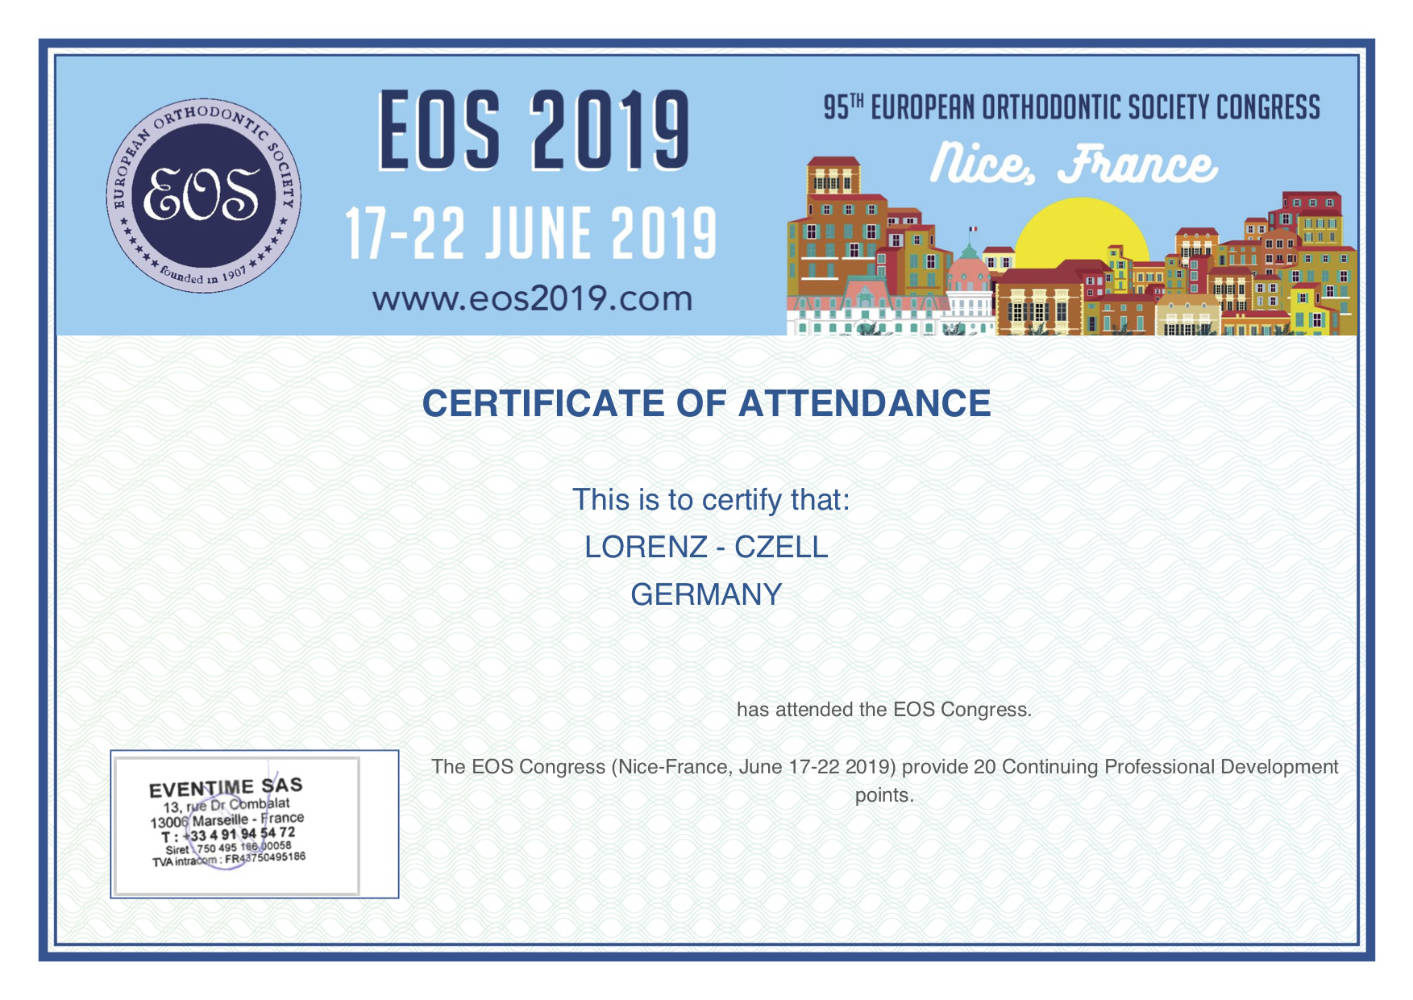 2019 06 17 22 LC 95 Congress of the European Orthodontic Society EOS